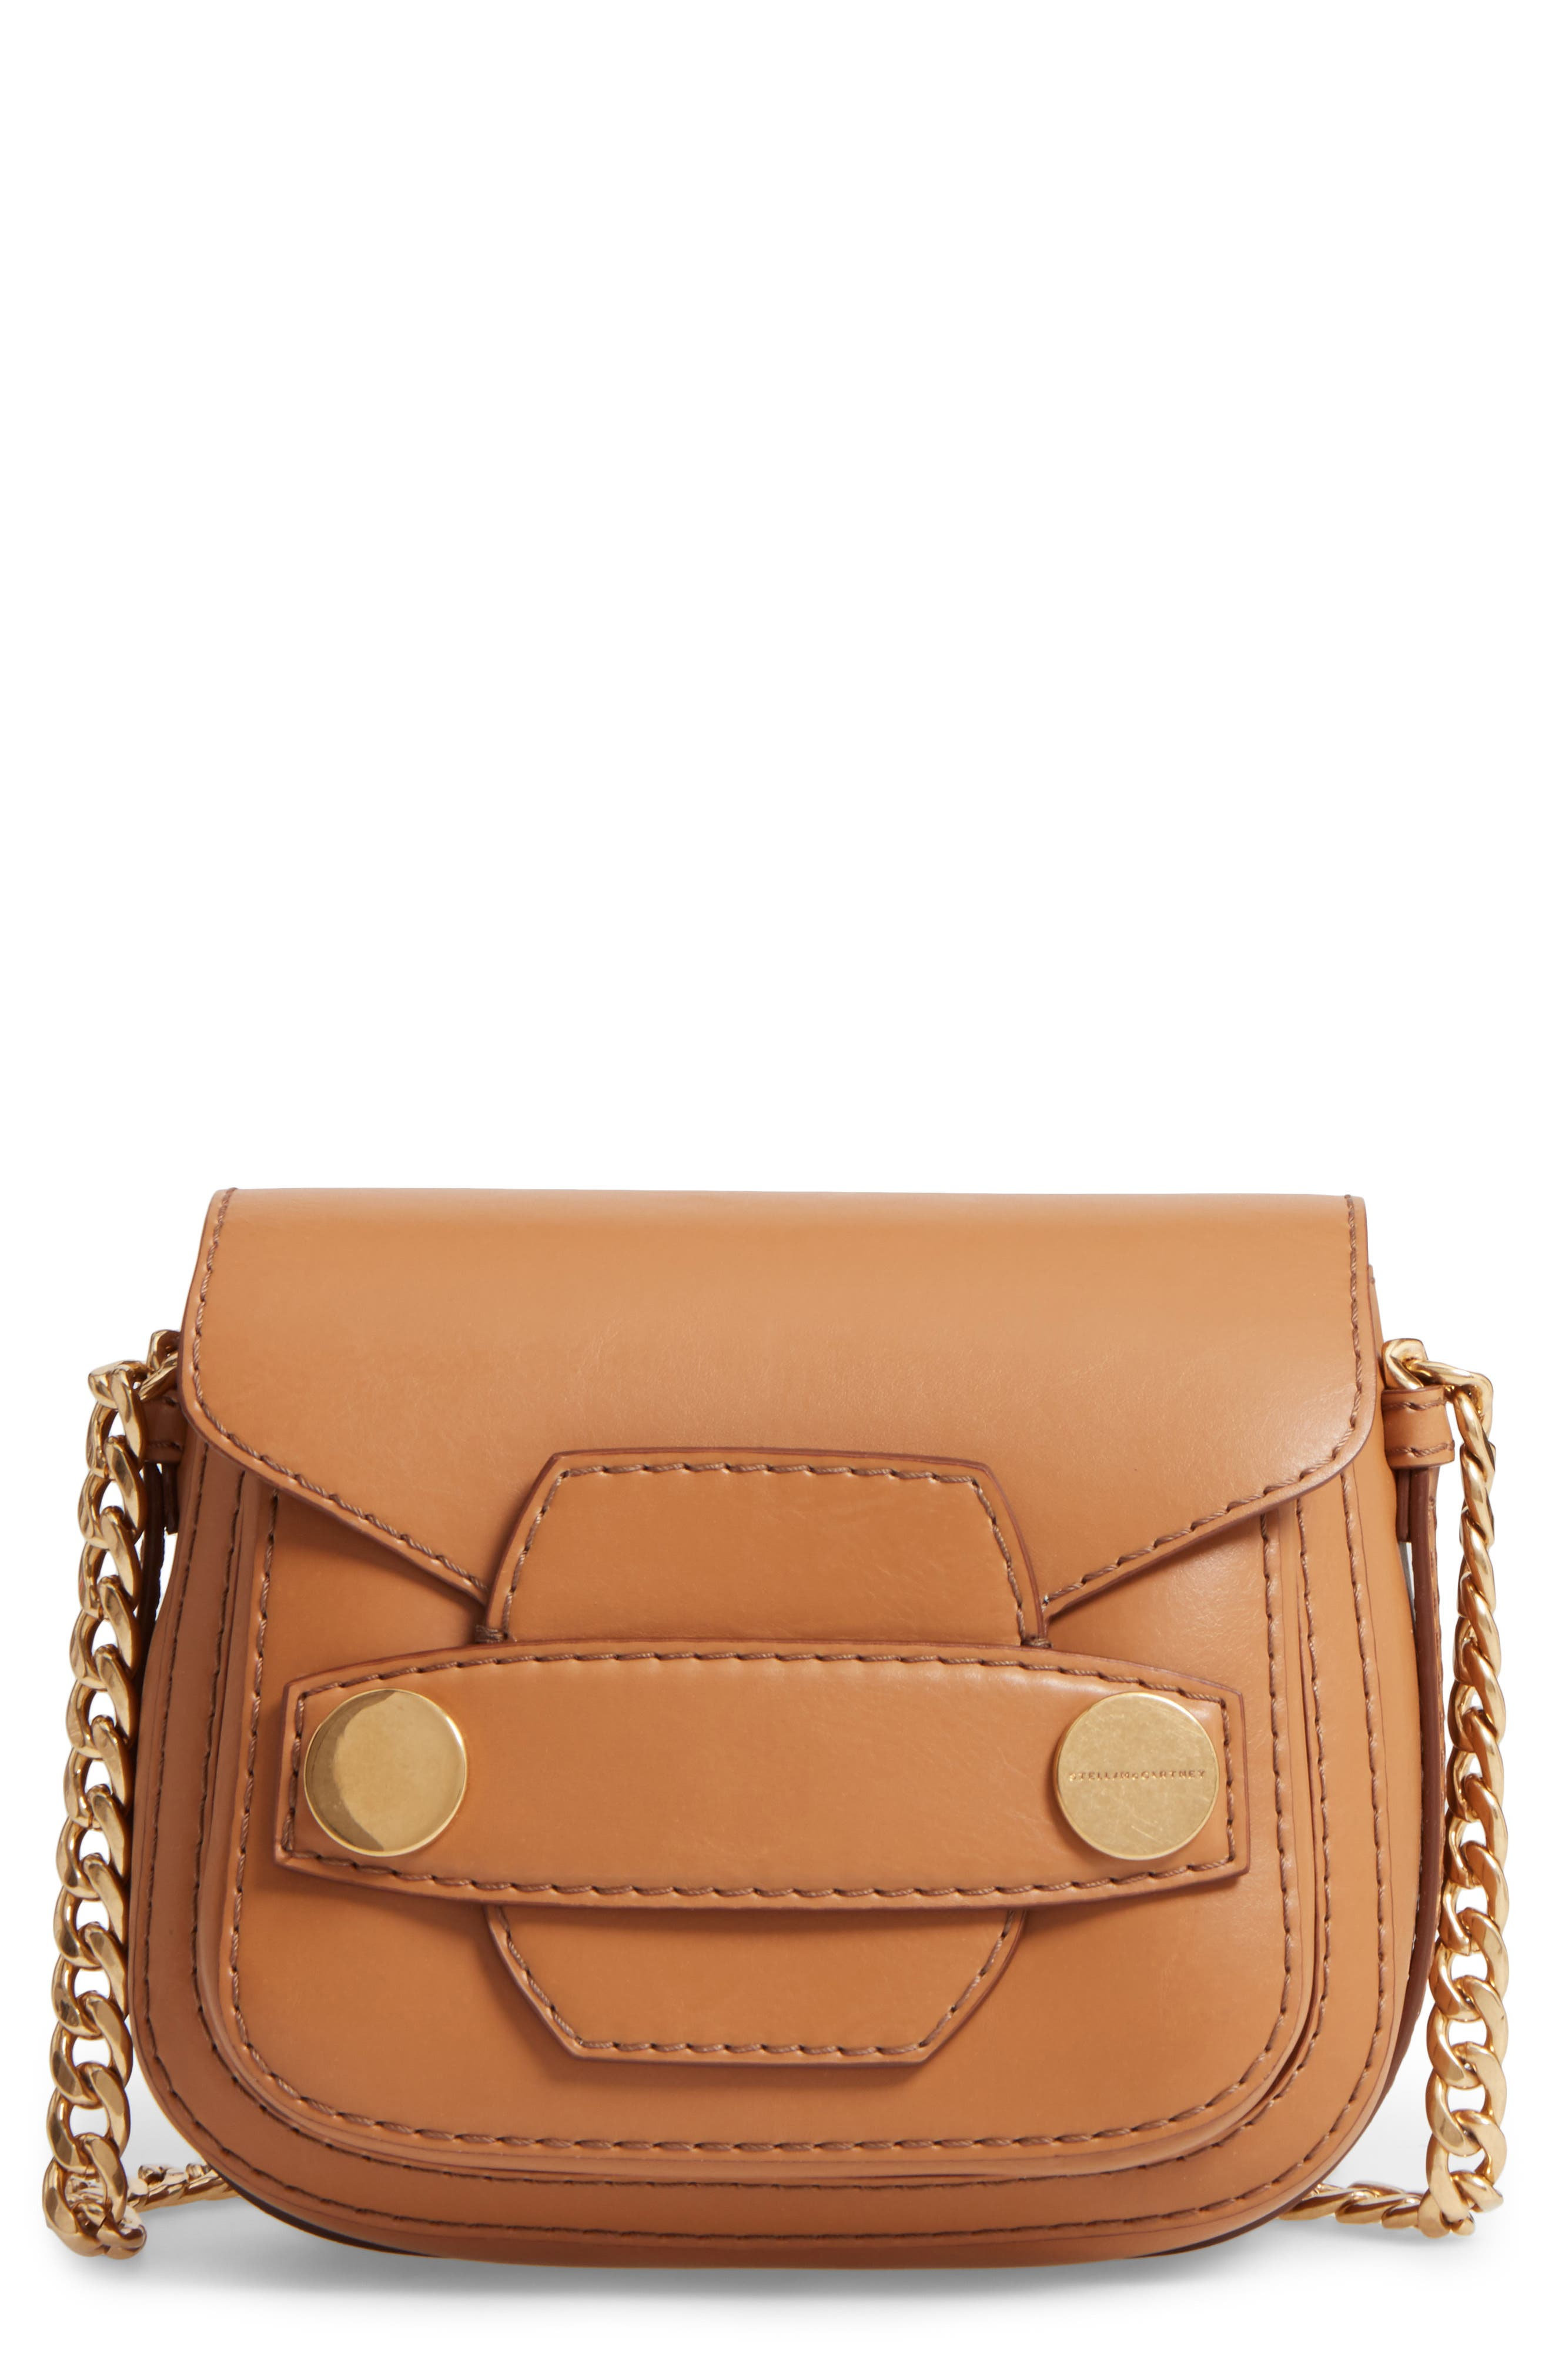 Textured Faux Leather Crossbody Bag,                         Main,                         color, Camel